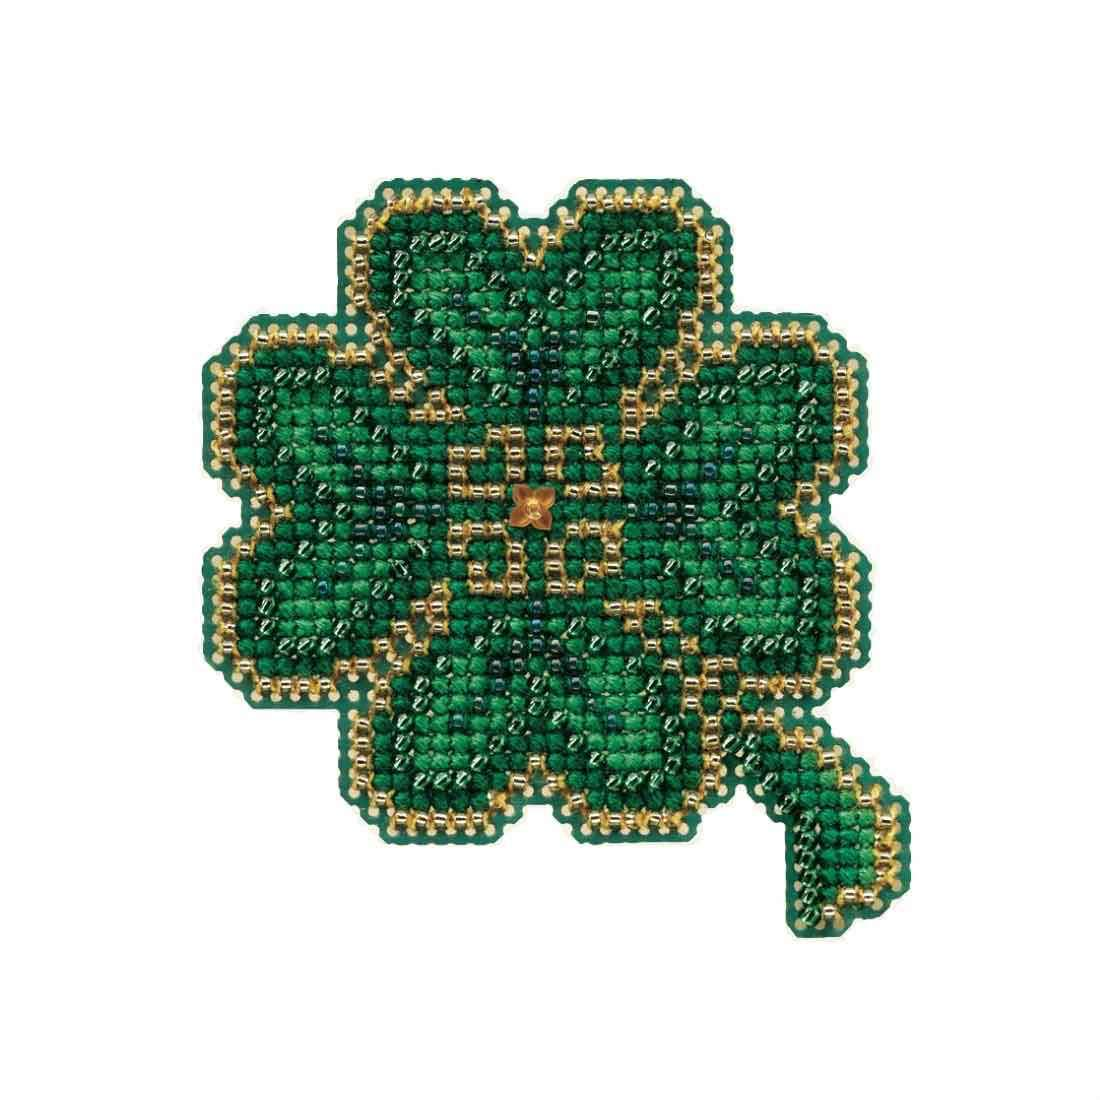 Lucky Day Beaded Counted Cross Stitch Ornament Kit Mill Hill 2010 Spring Bouquet MH18-0102 Wichelt MH180102